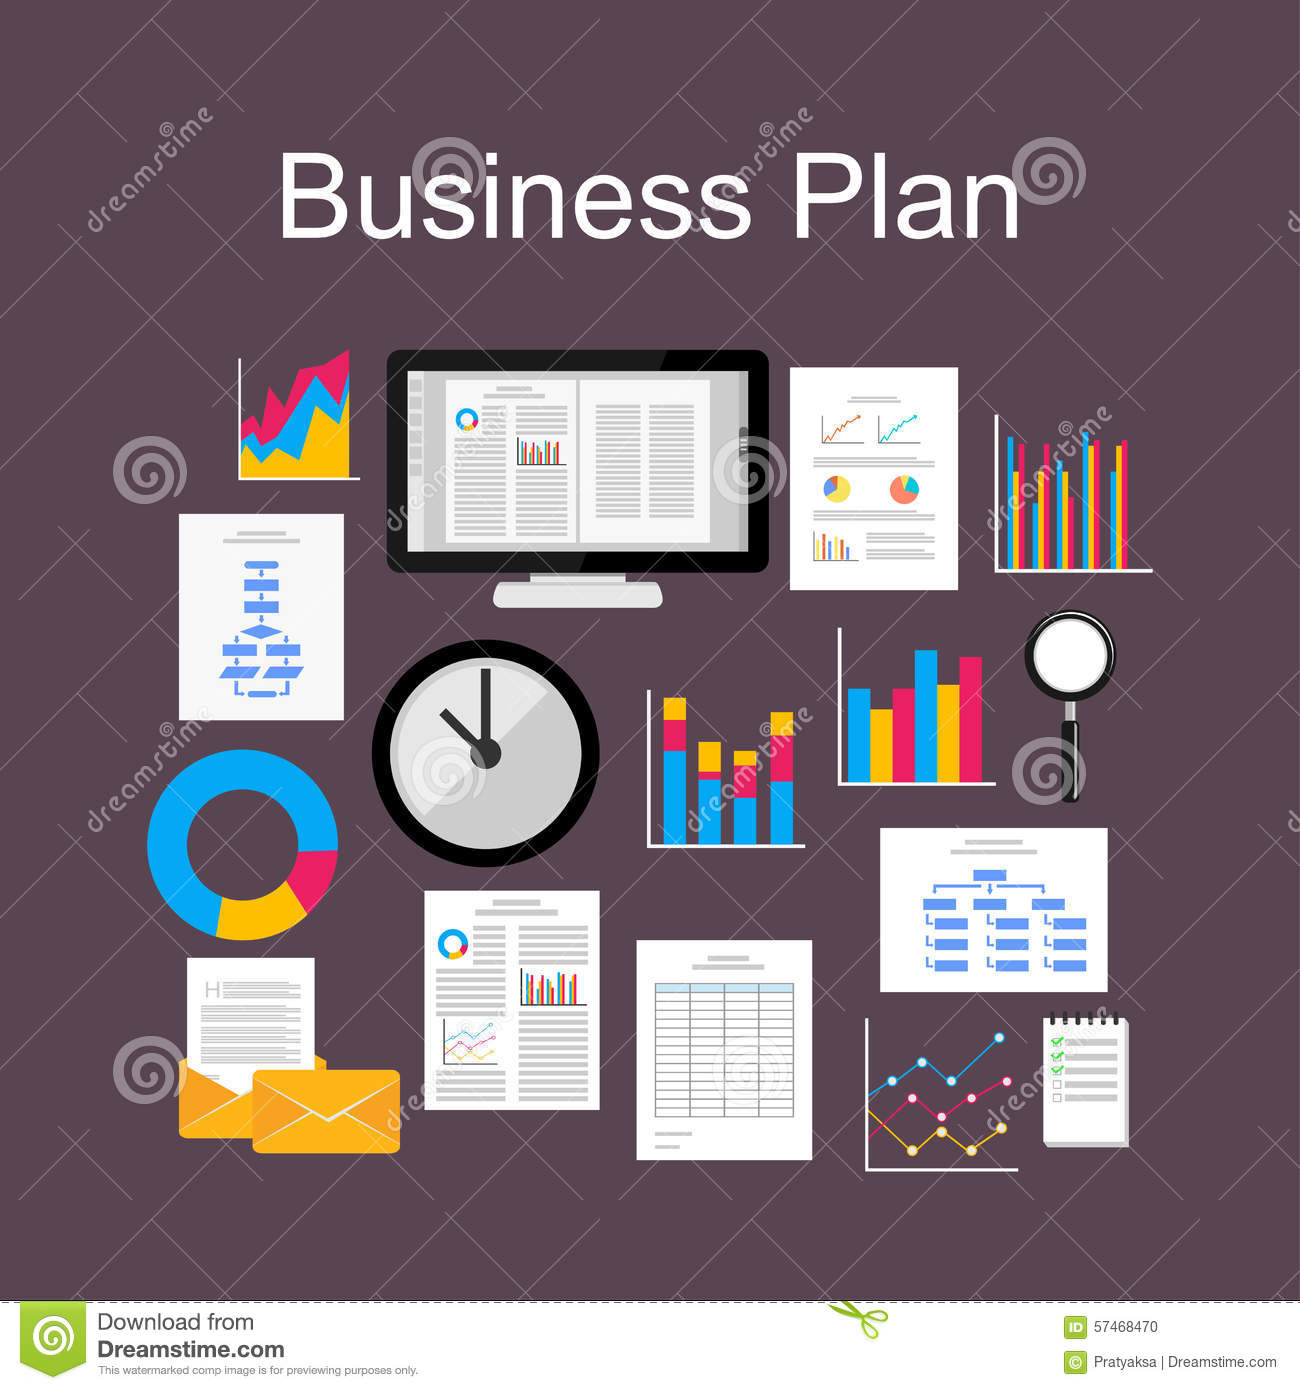 Business Plan Tools for Startups and Small Businesses